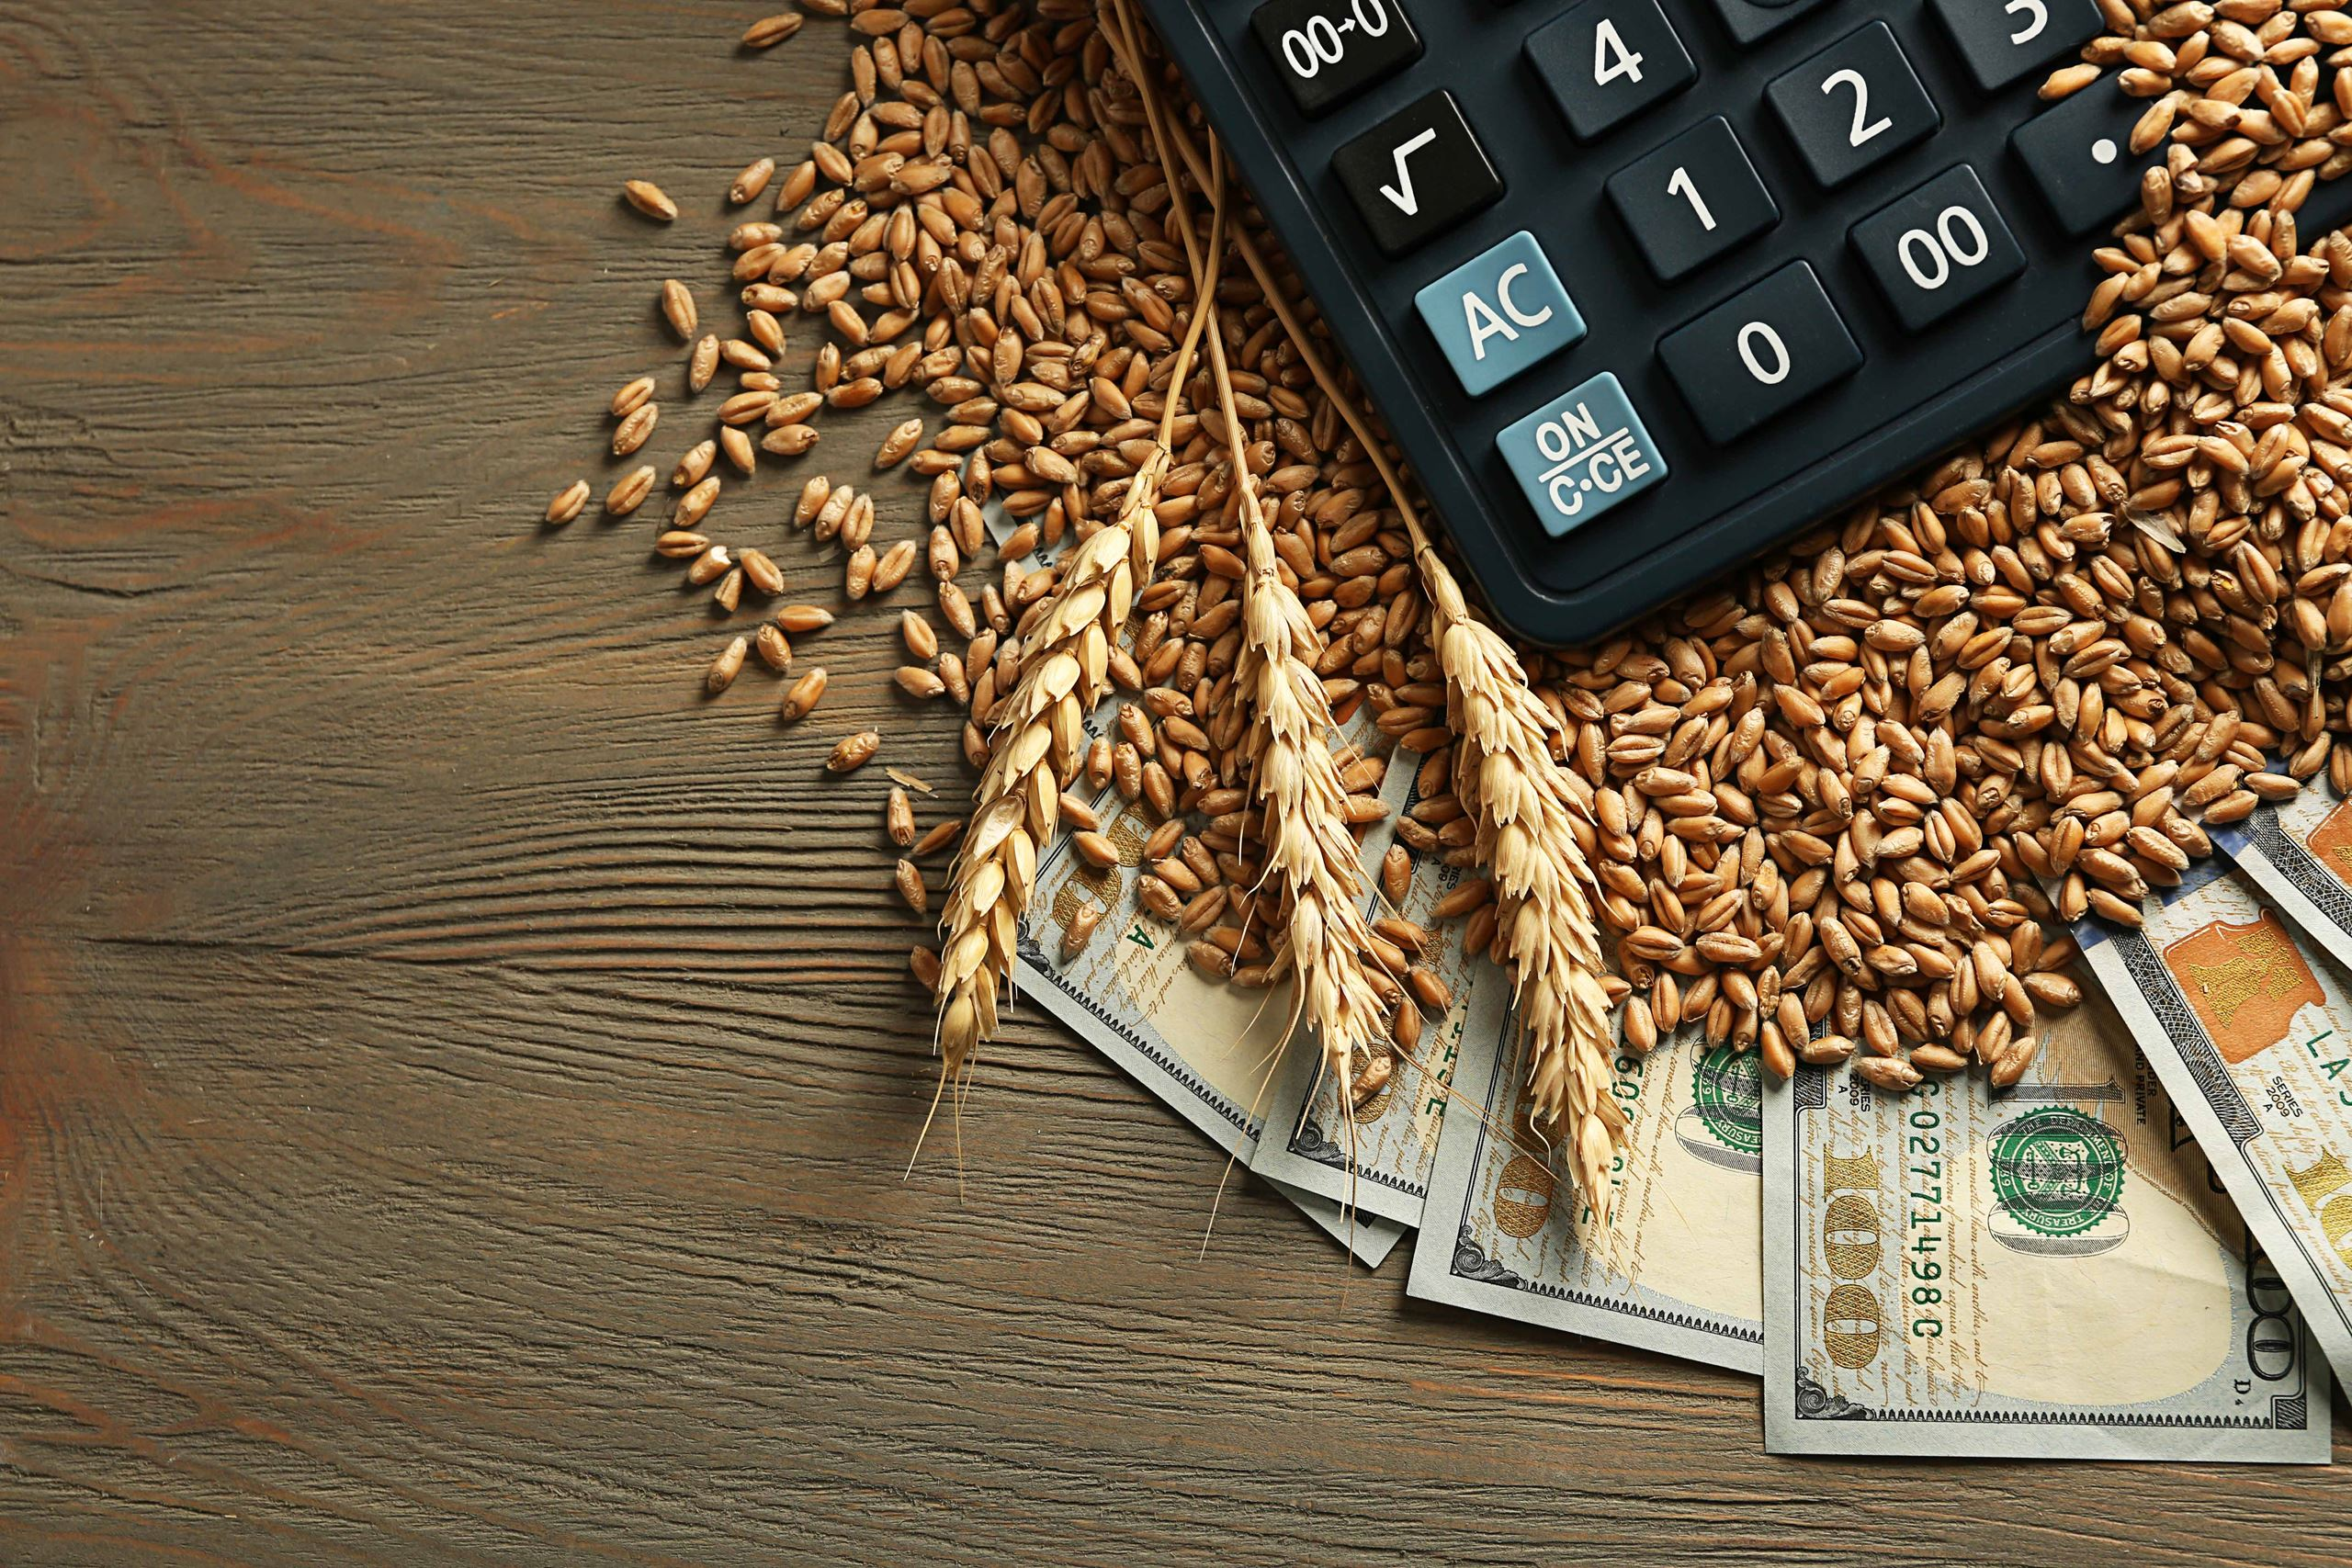 Calculator on top of wheat beans